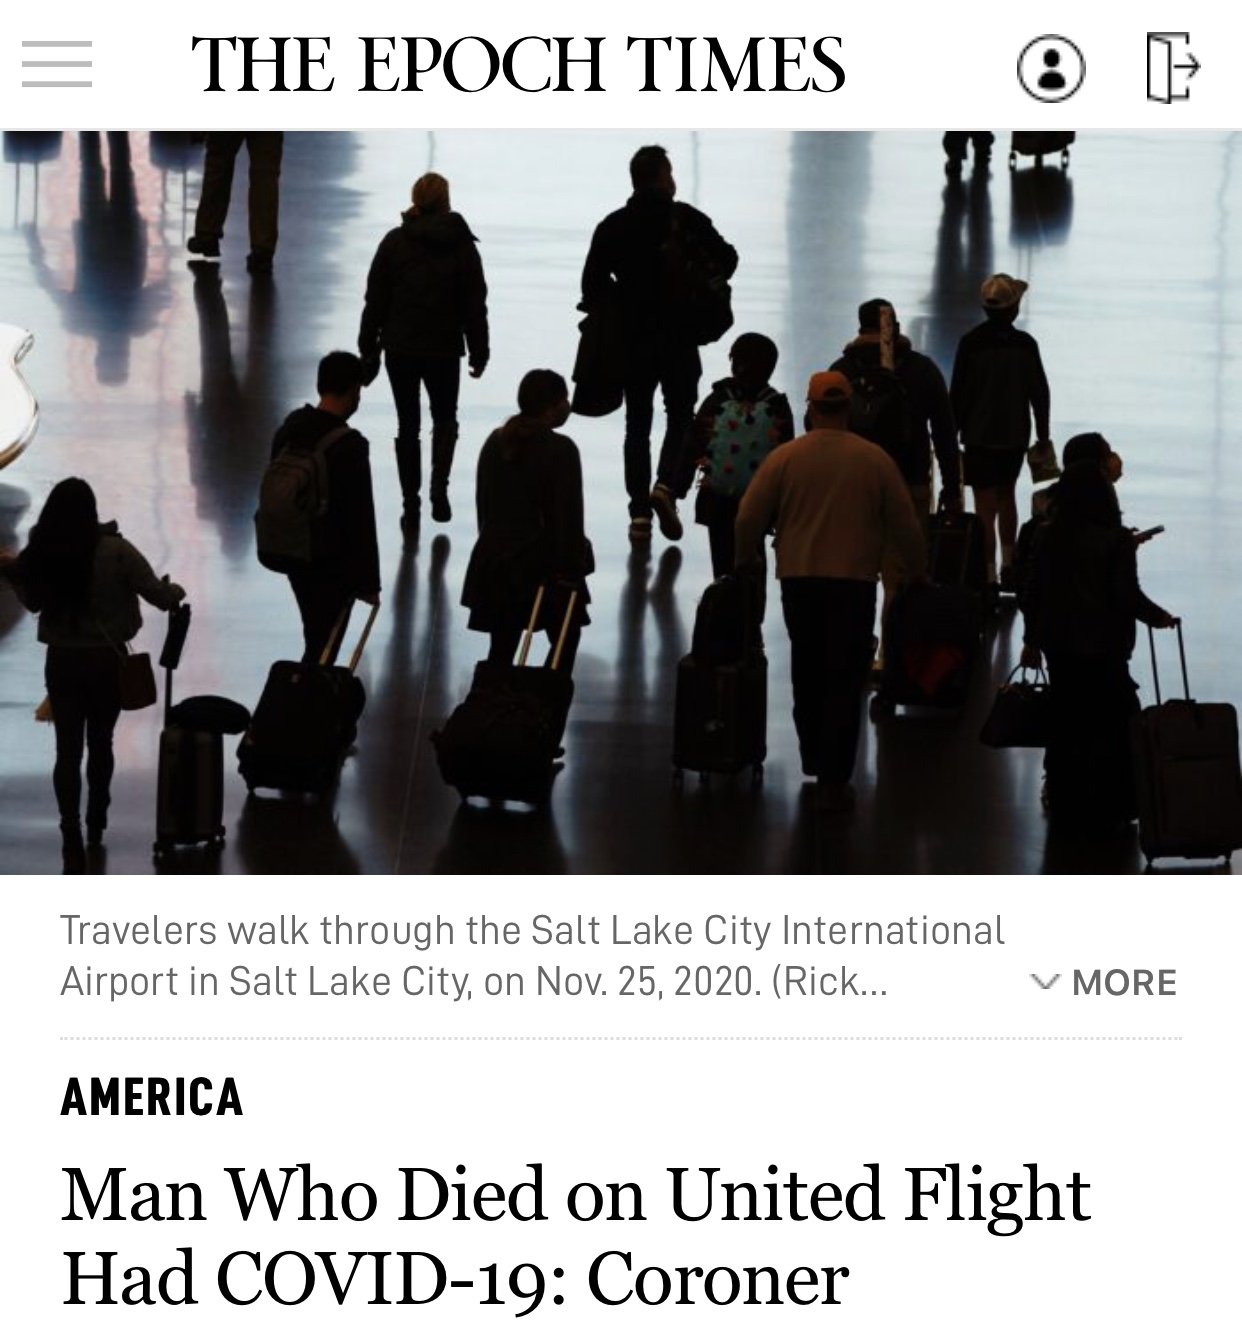 Man Dies on United Airlines Flight Who Had COVID-19